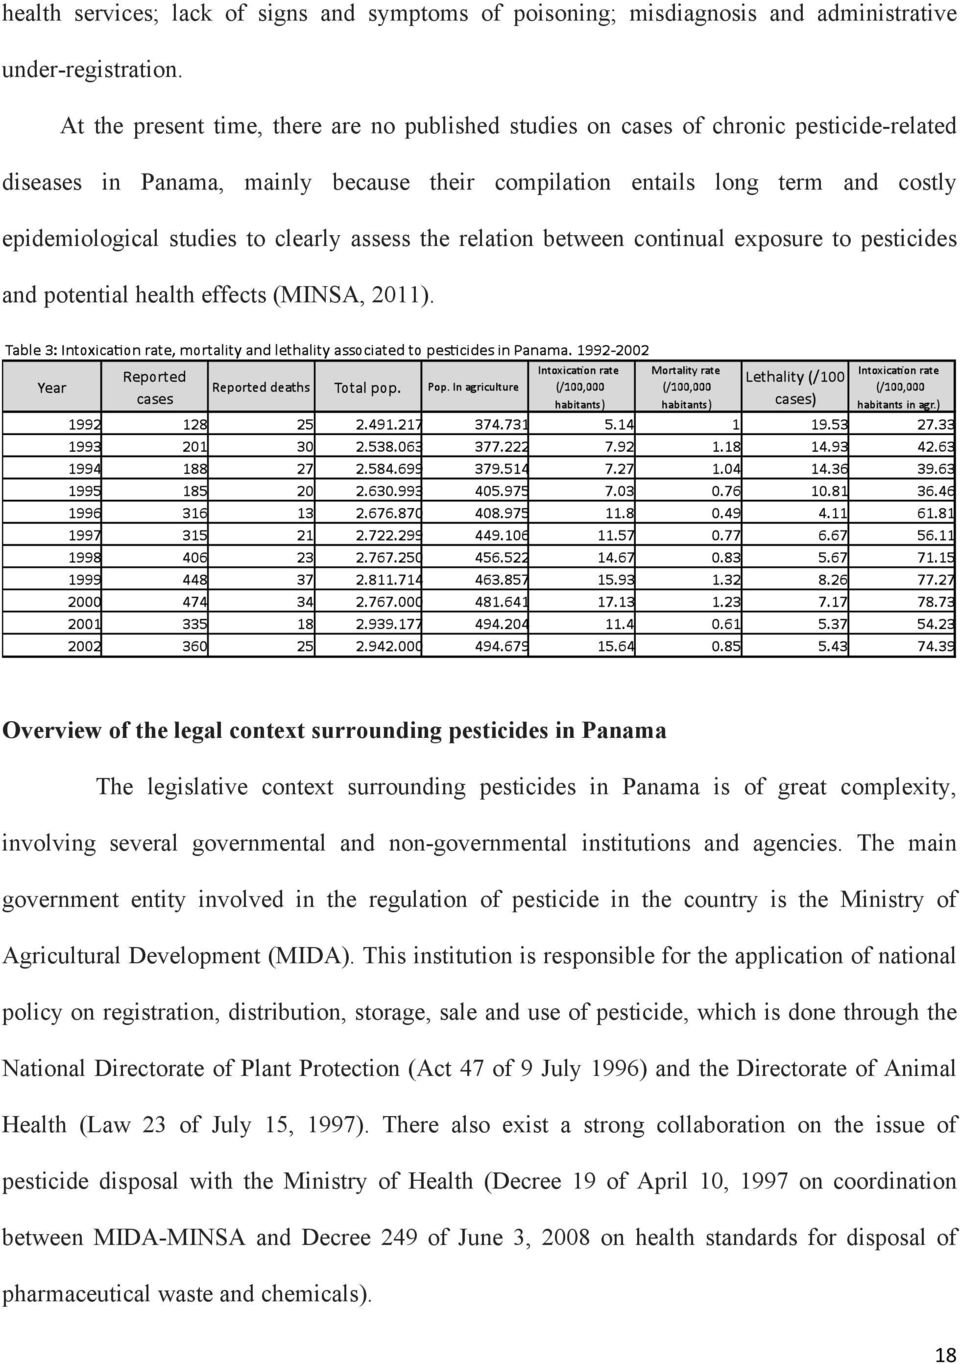 clearly assess the relation between continual exposure to pesticides and potential health effects (MINSA, 2011).